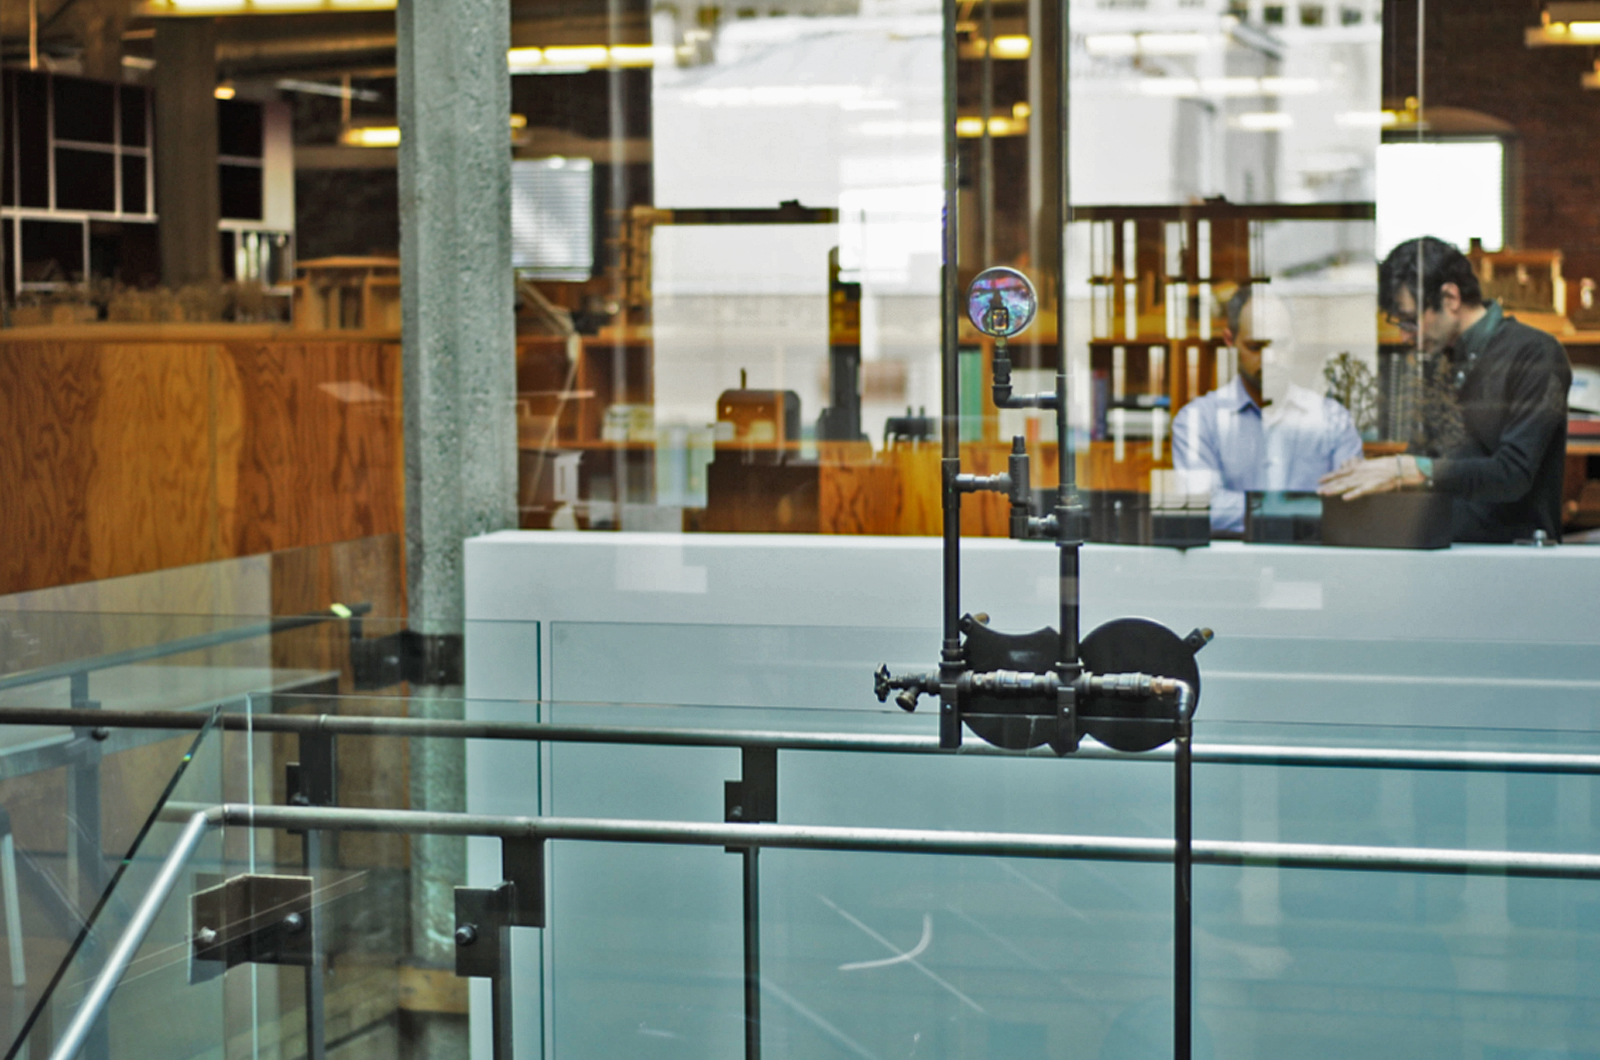 A view from the conference room to the open floor plan of the Olson Kundig Architects offices.